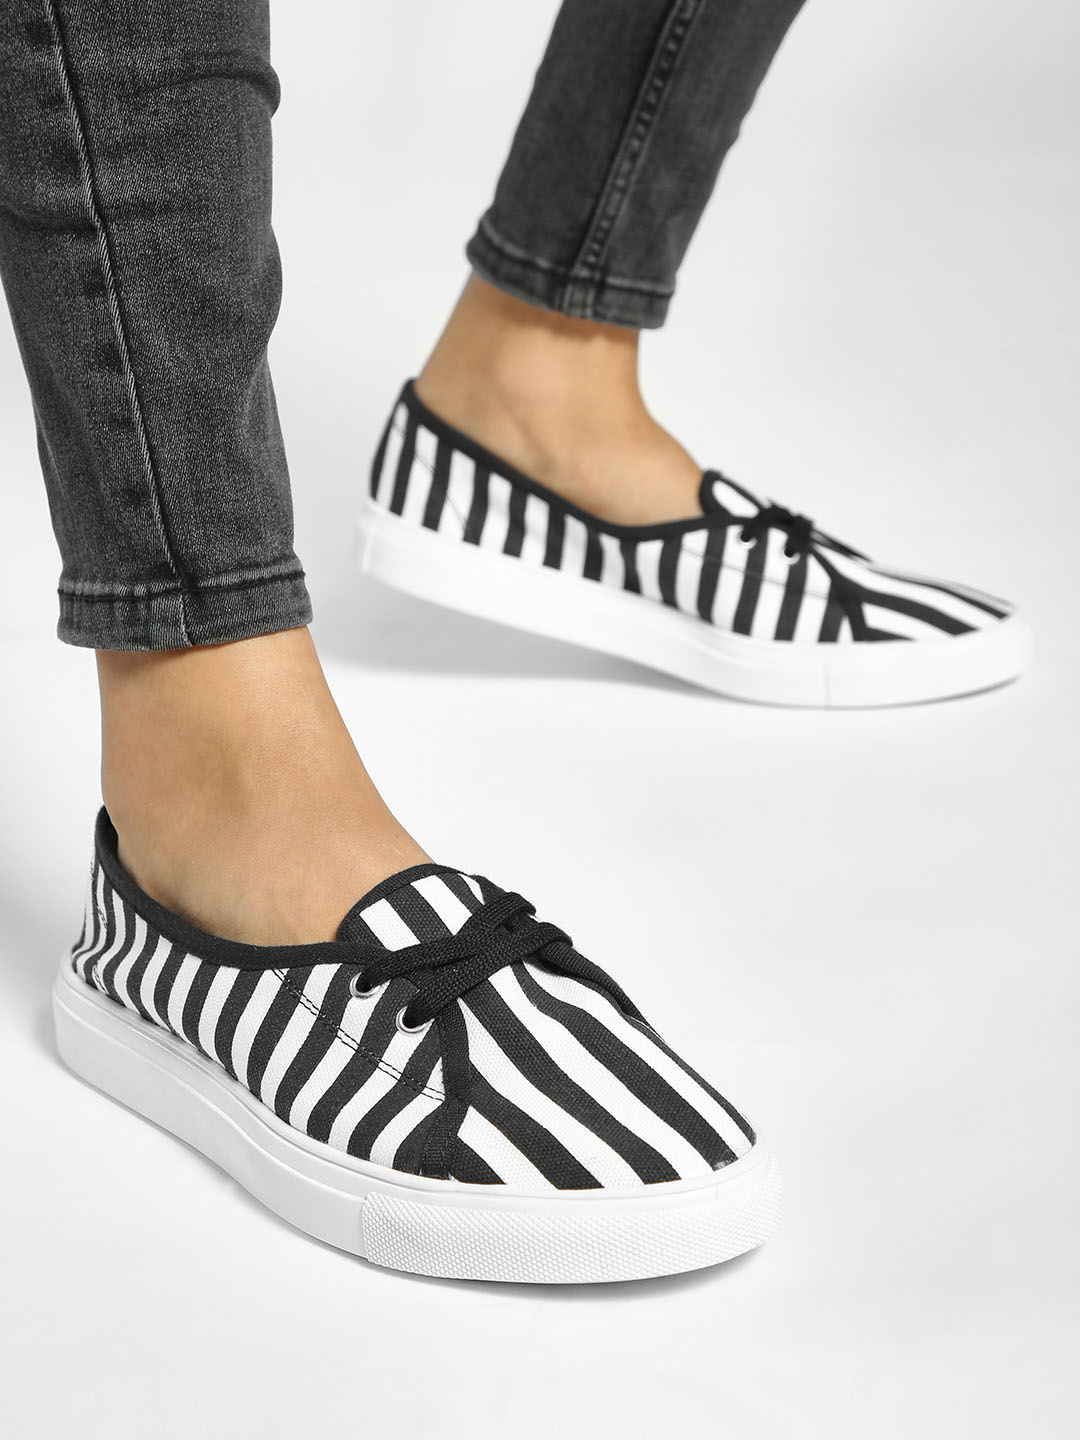 ADORLY Black Colour Block Stripe Sneakers 1